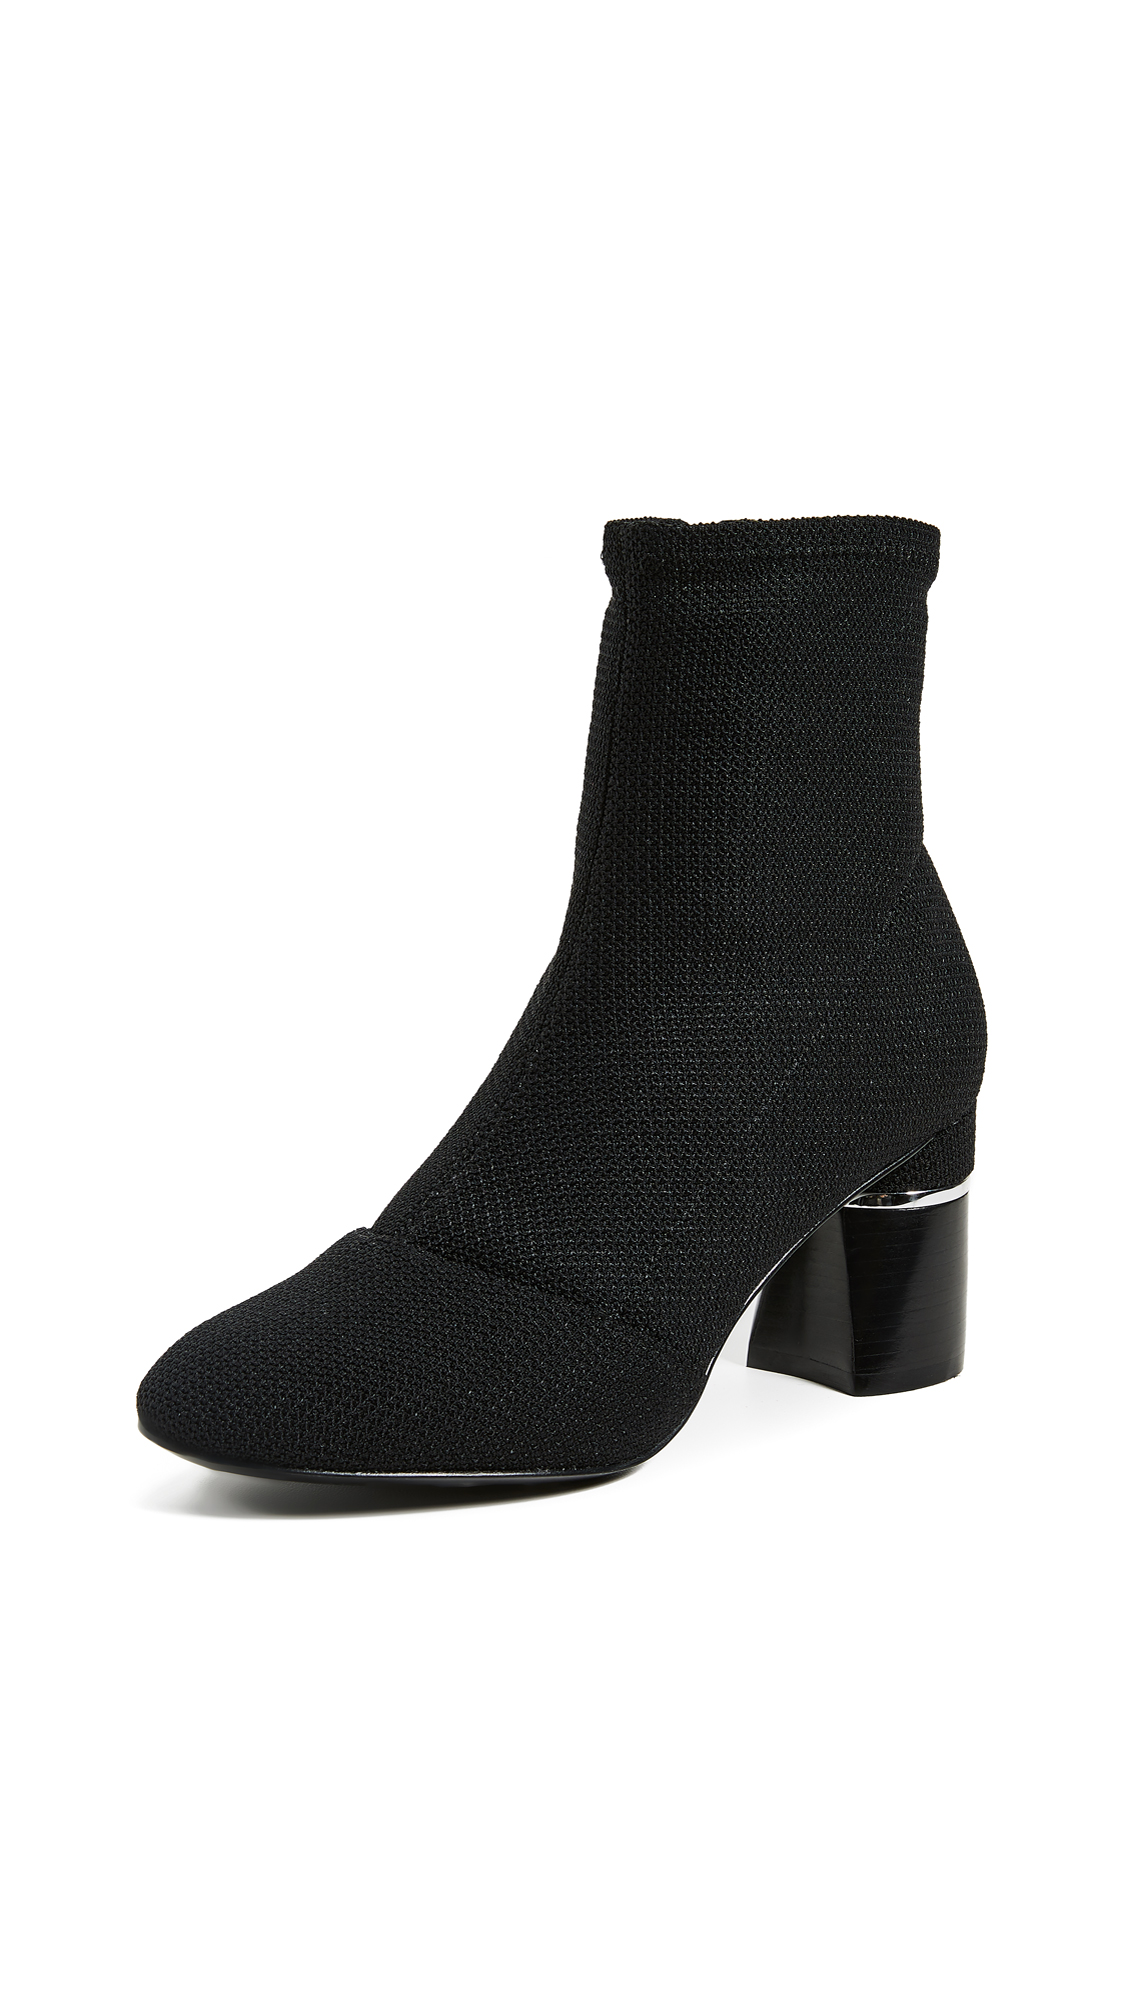 3.1 Phillip Lim Drum Ankle Boots - Black